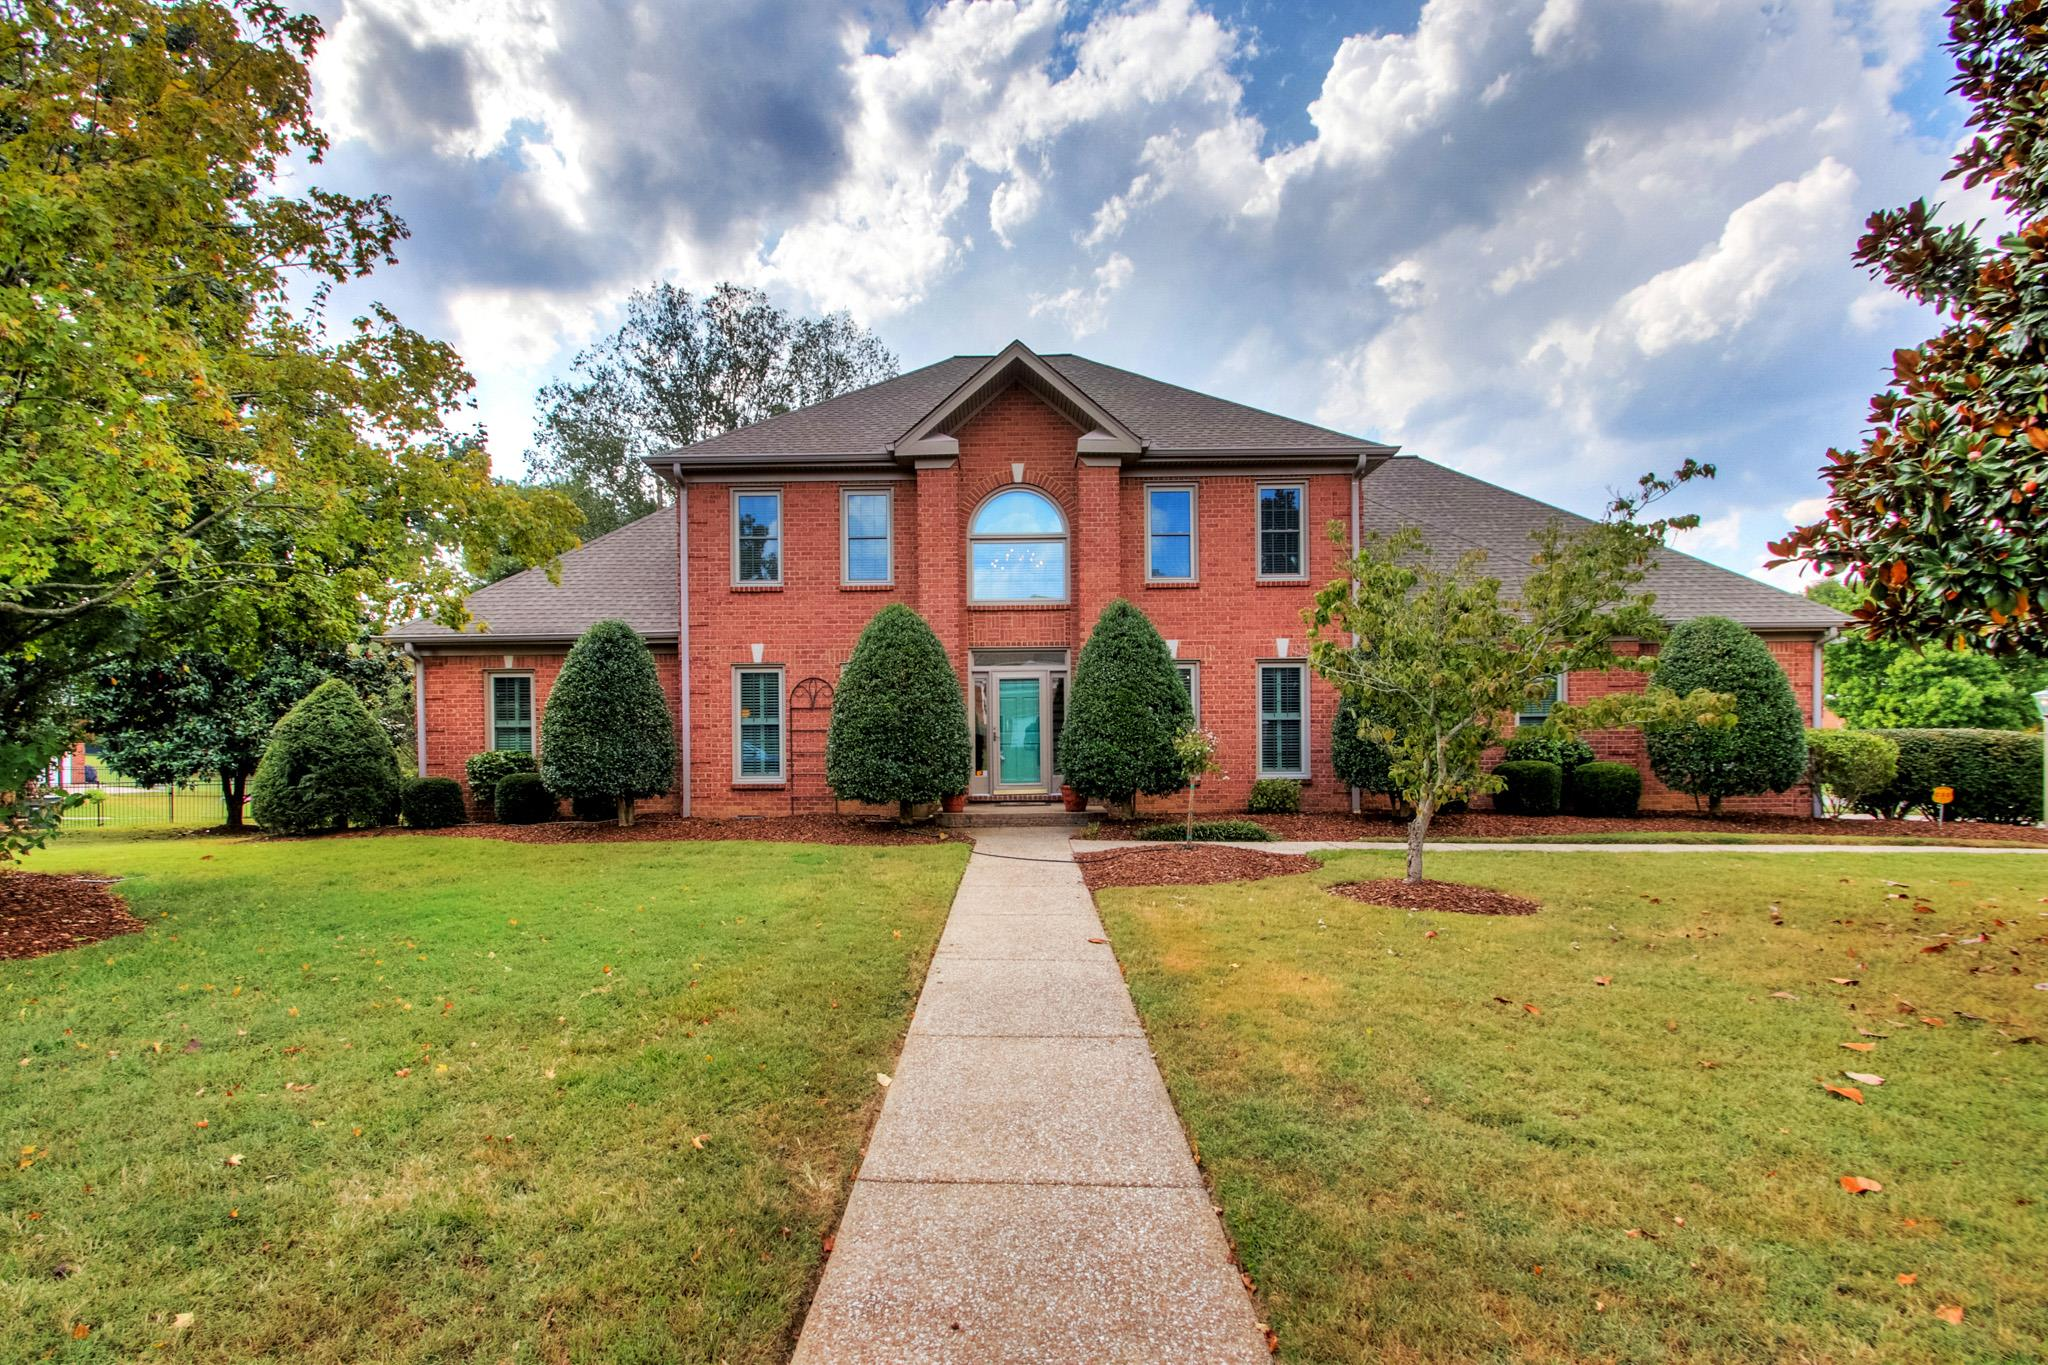 152 Shute Cir, Old Hickory, TN 37138 - Old Hickory, TN real estate listing